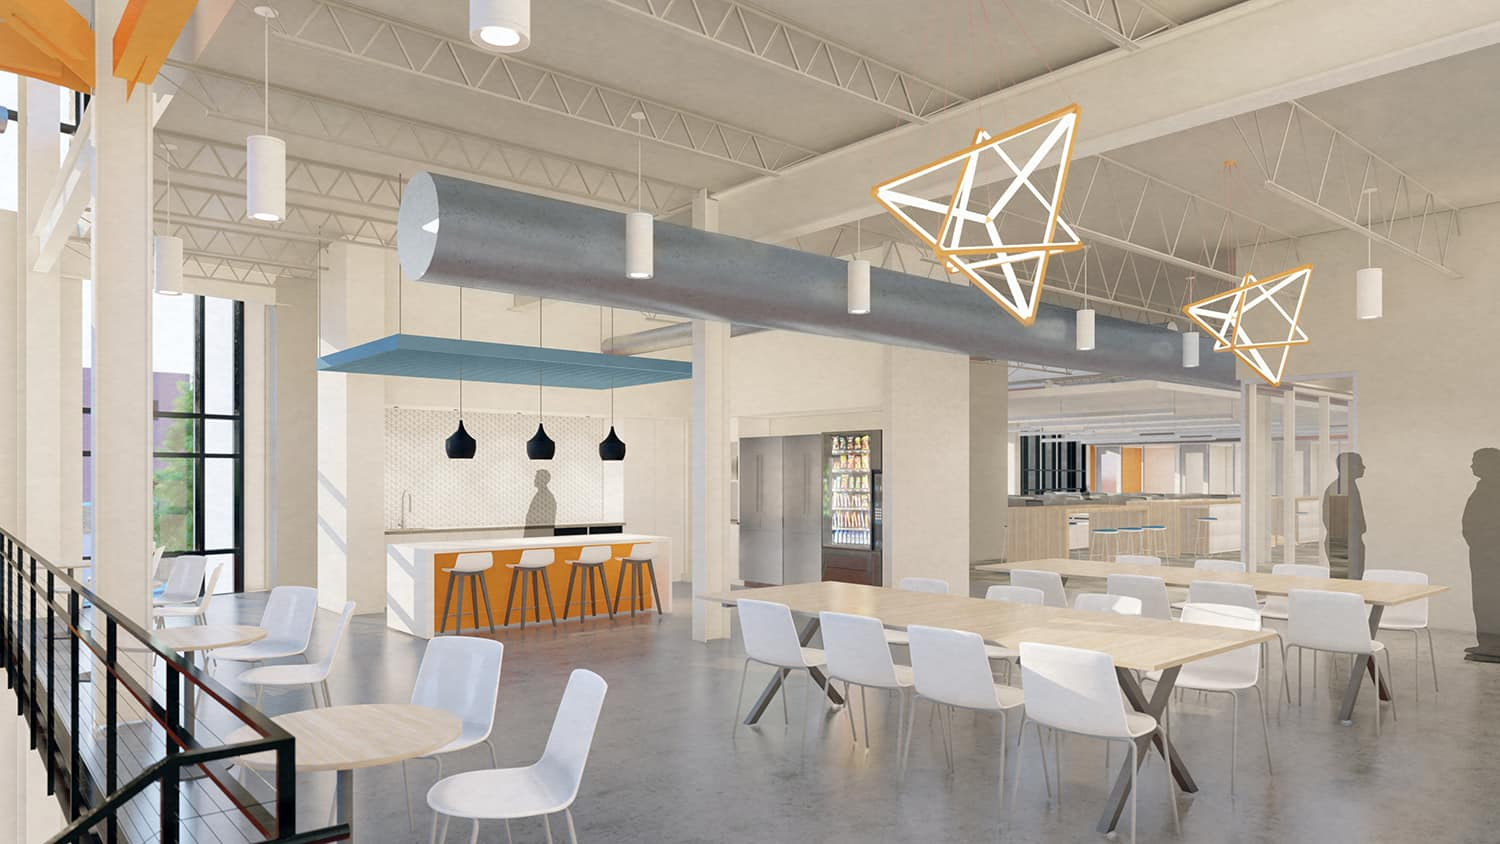 A fresh interior cafe setting with open seating and access to the adjacent work neighborhood.